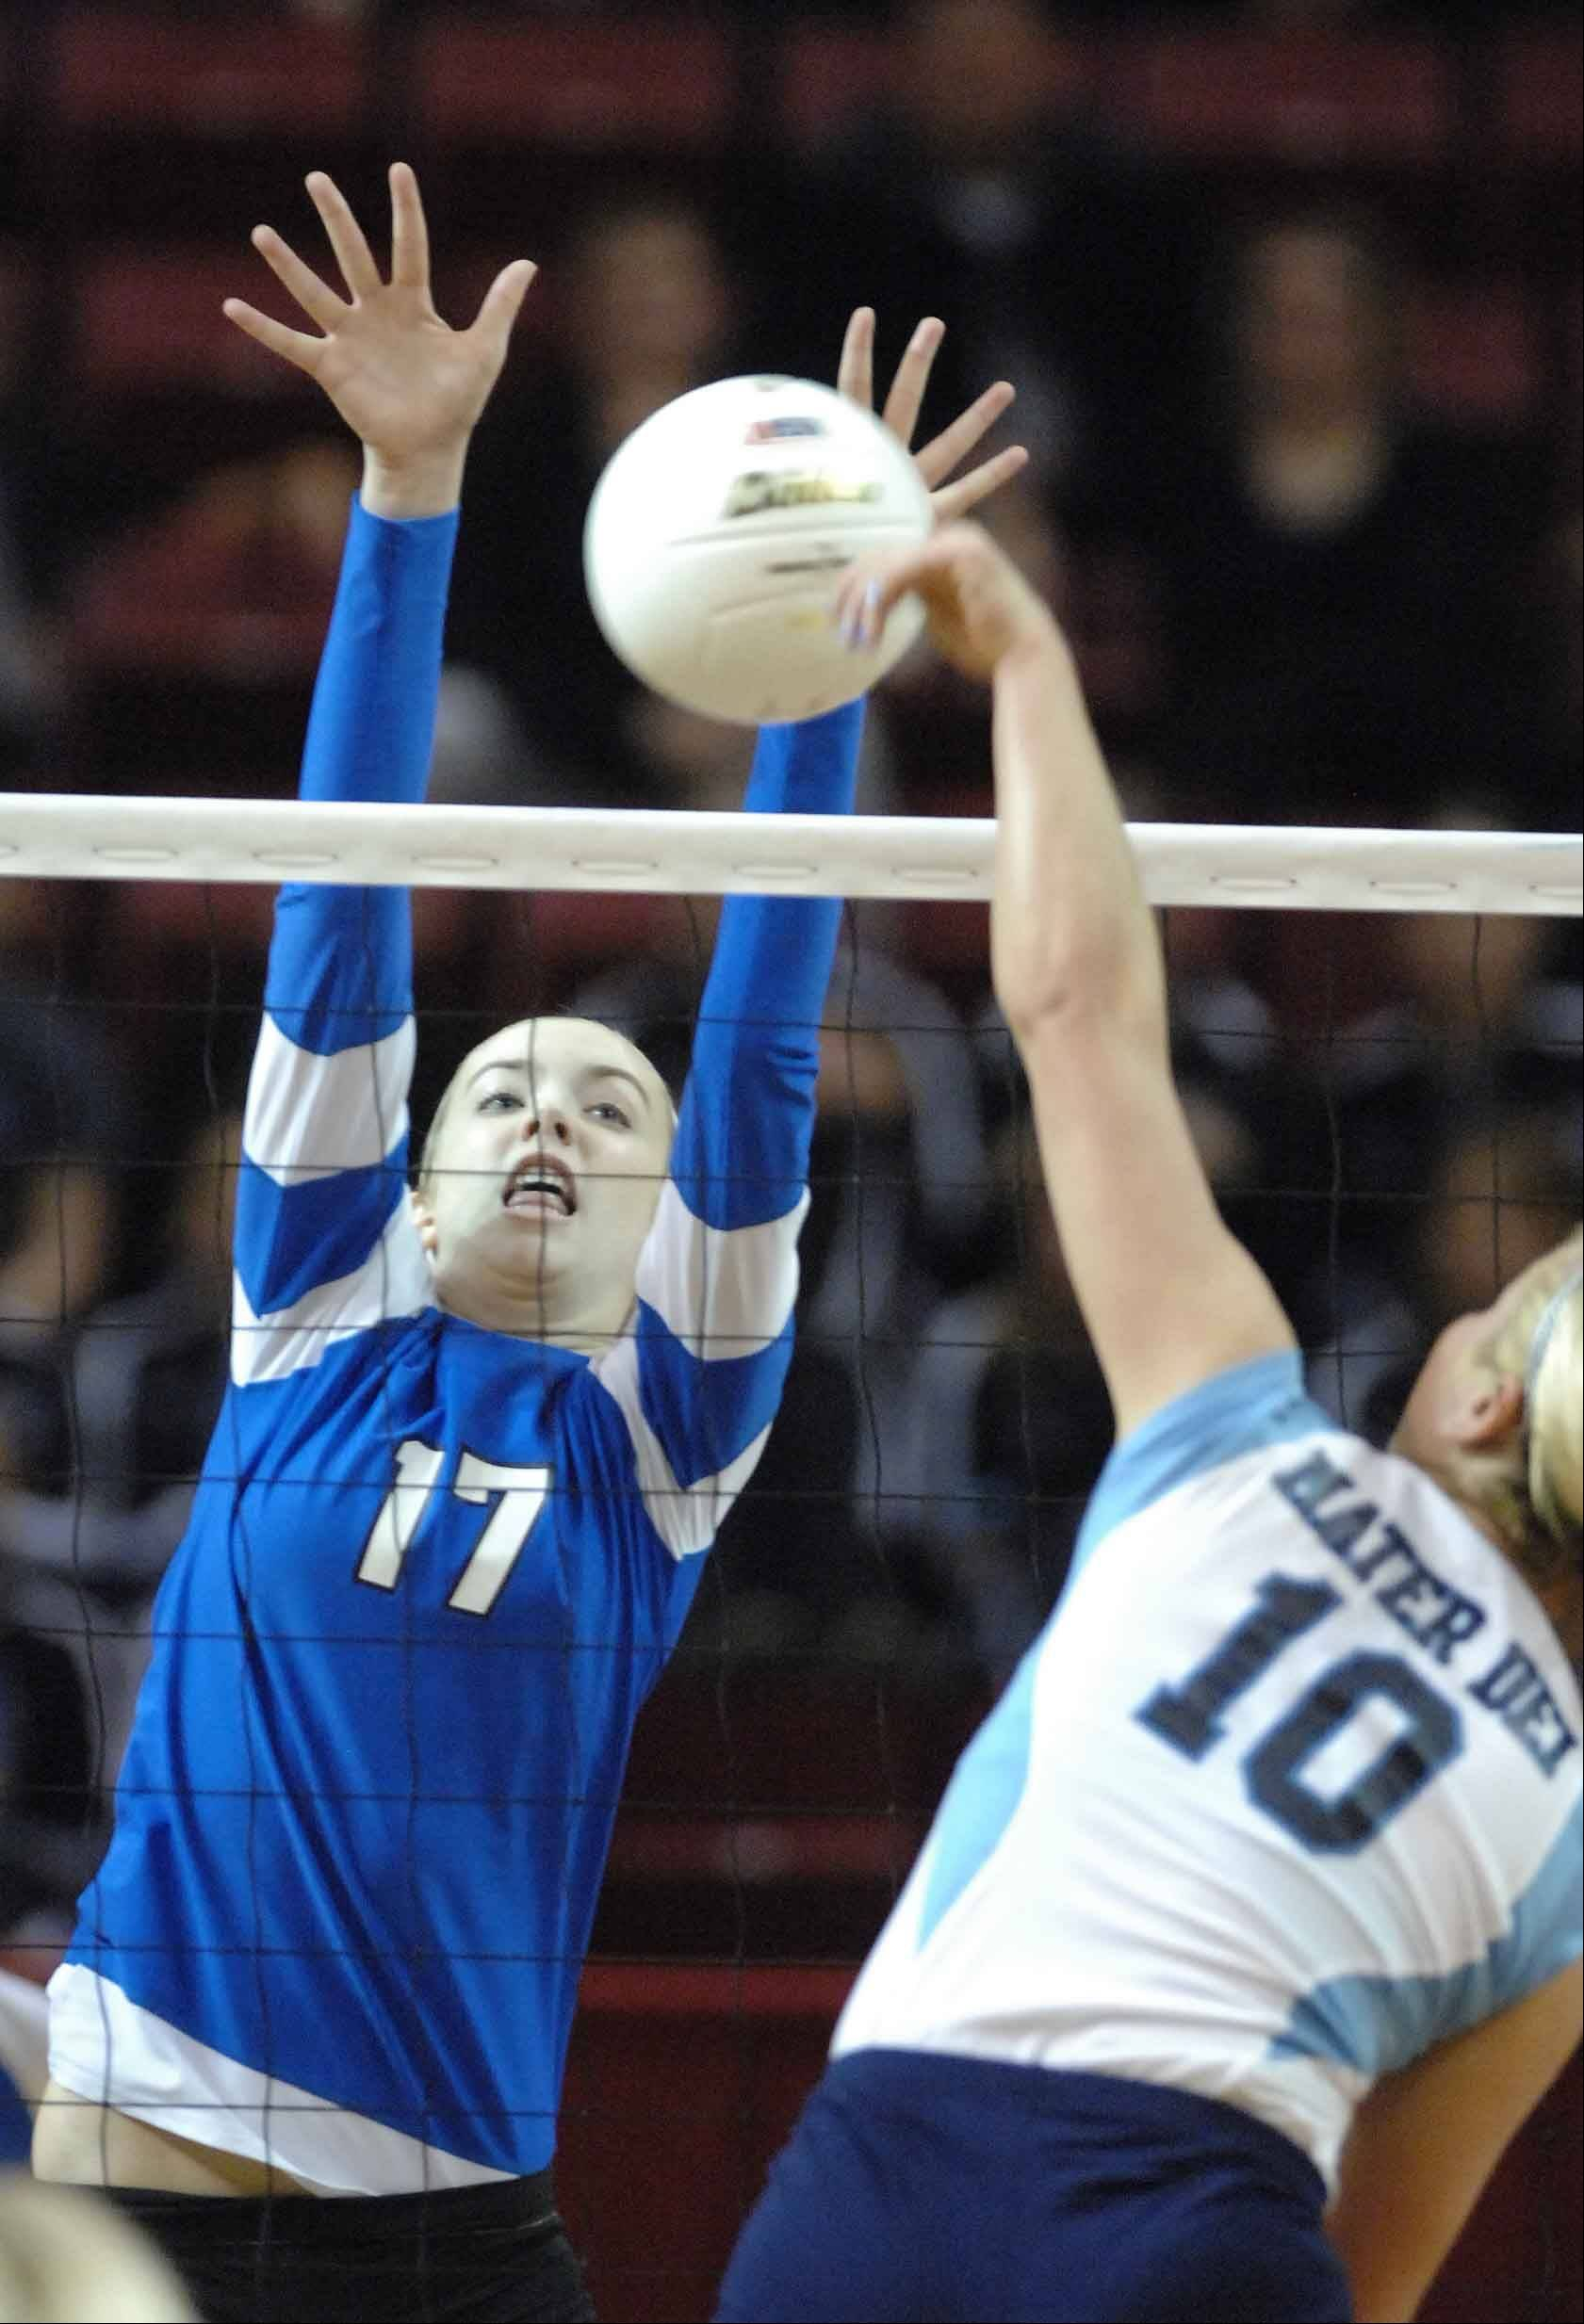 Mary Boken goes up for a block during the St. Francis vs. Breese Mater Dei girls volleyball 3A semifinal Friday in Normal.